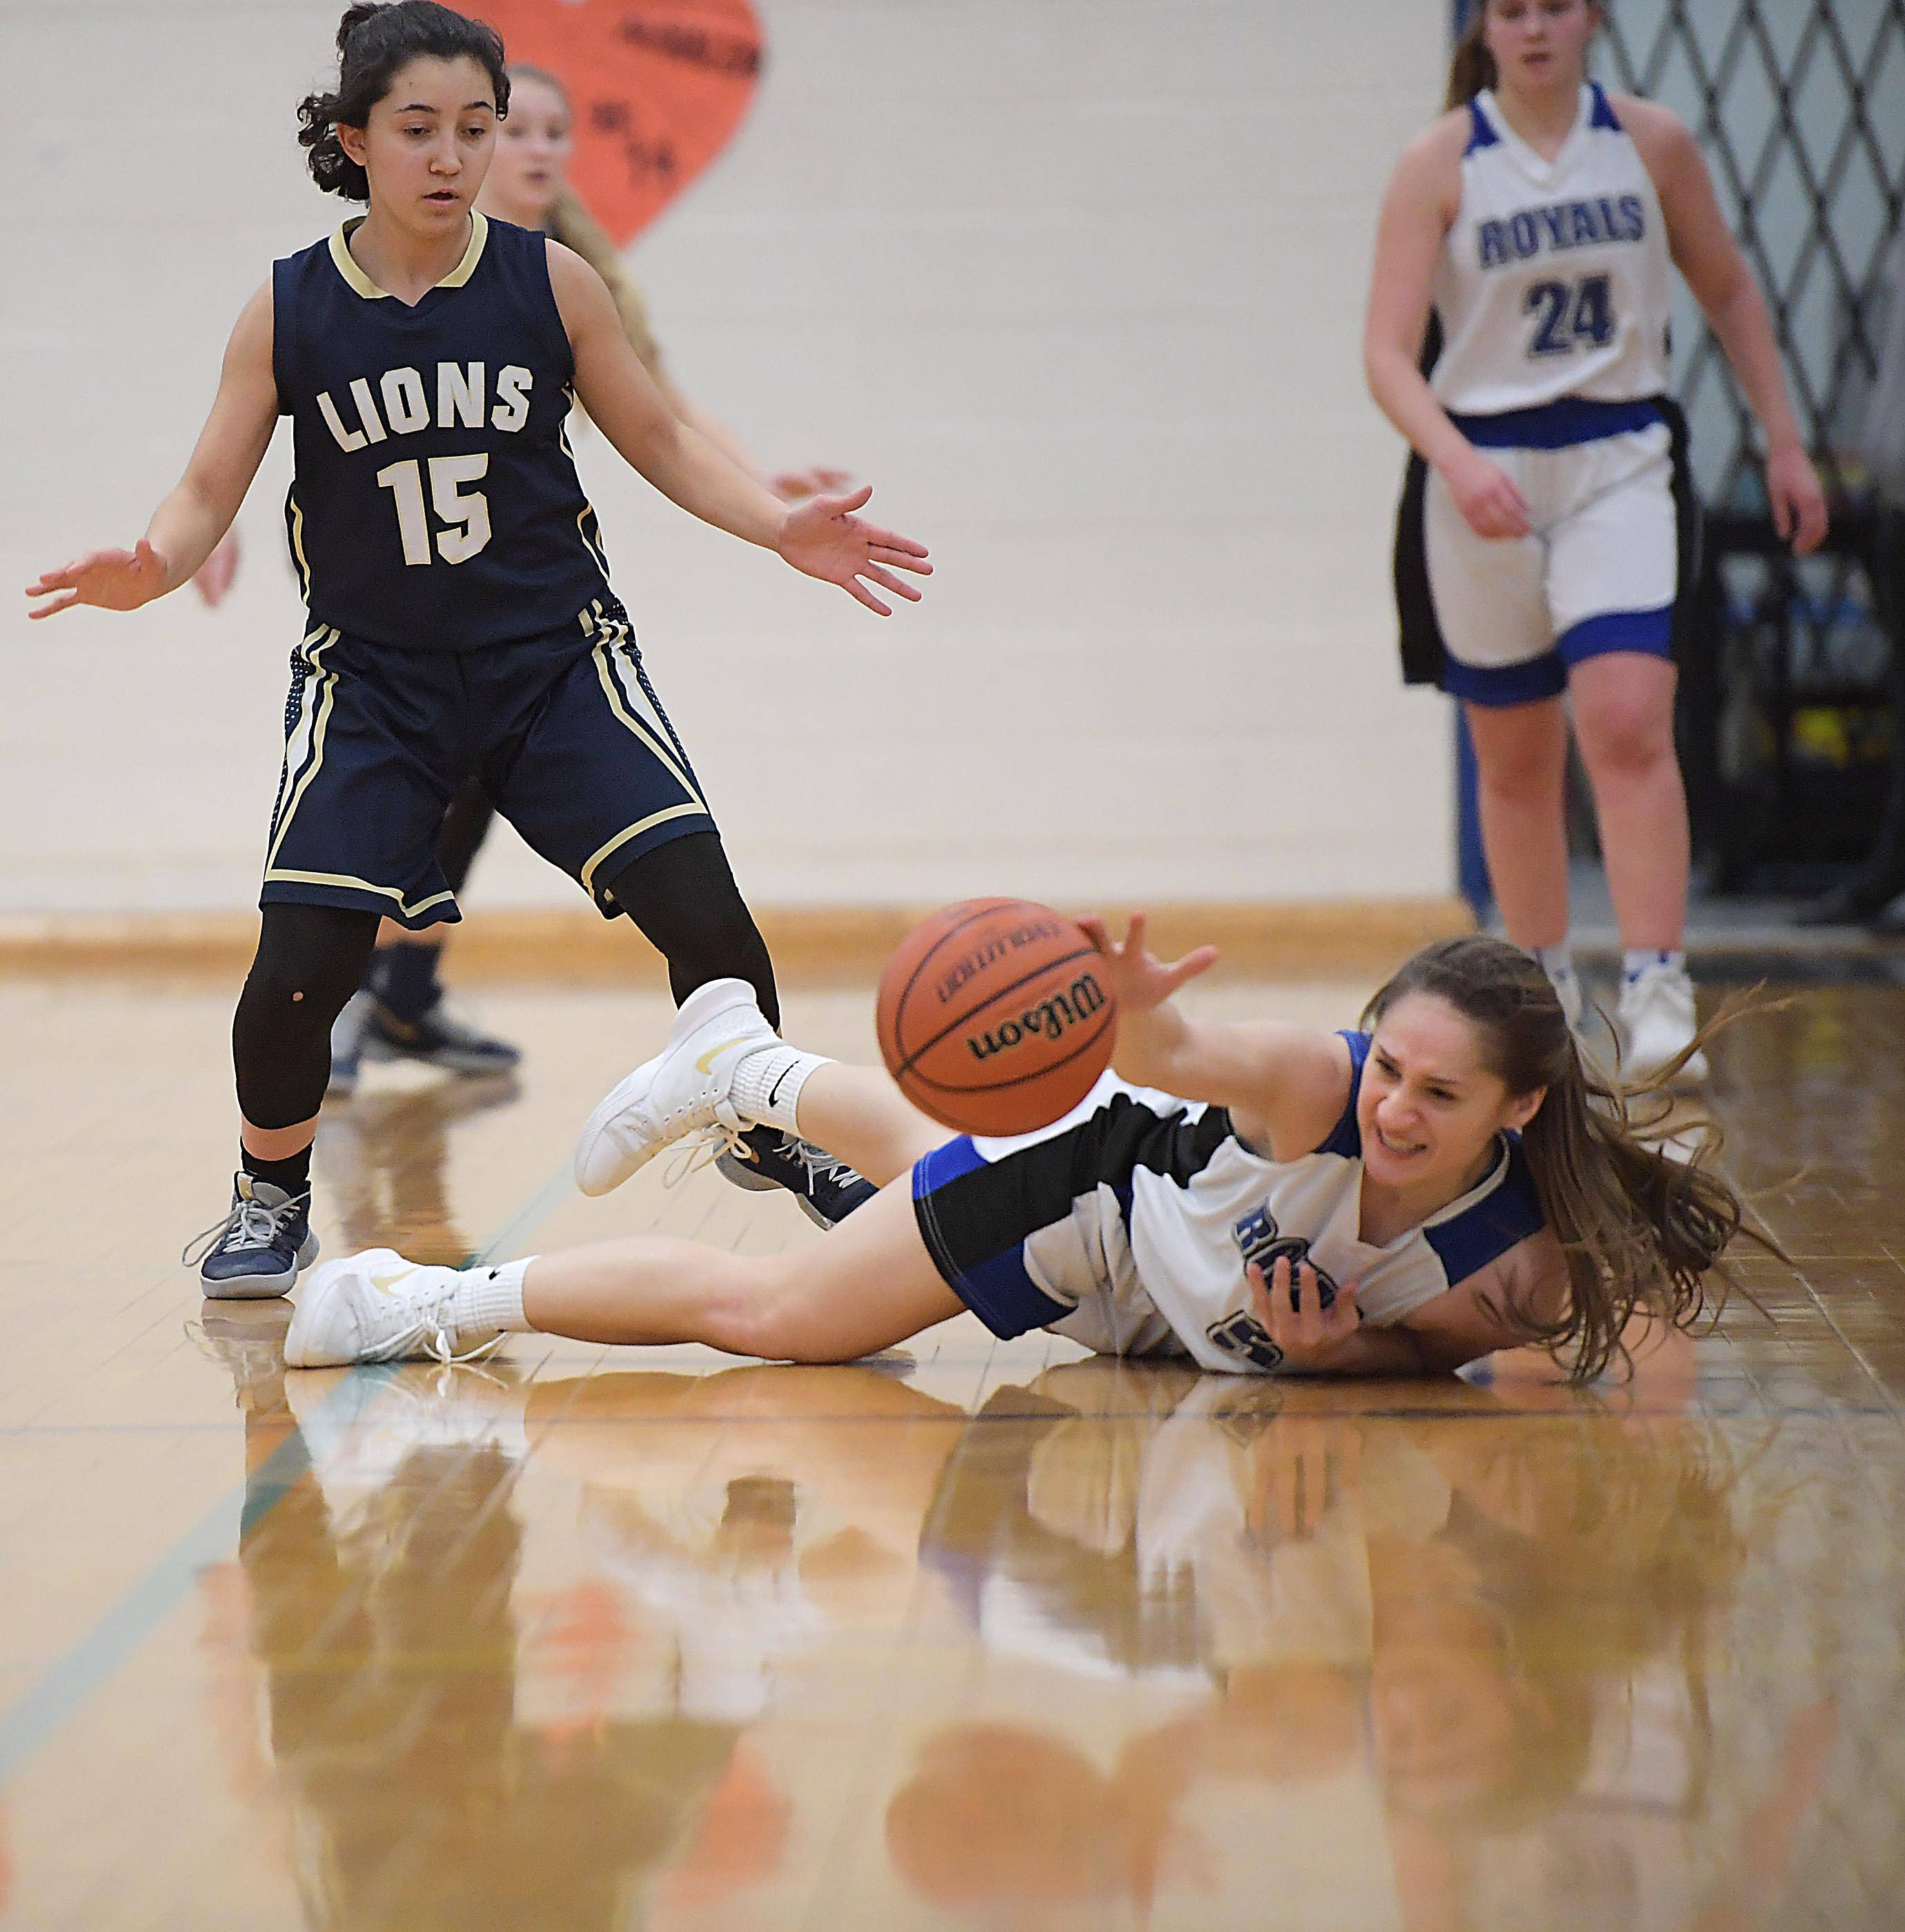 Rosary's Jenna Hernandez loses the ball out of bounds as Harvest Christian's Elena Porrata watches in a girls basketball game in Aurora Tuesday.